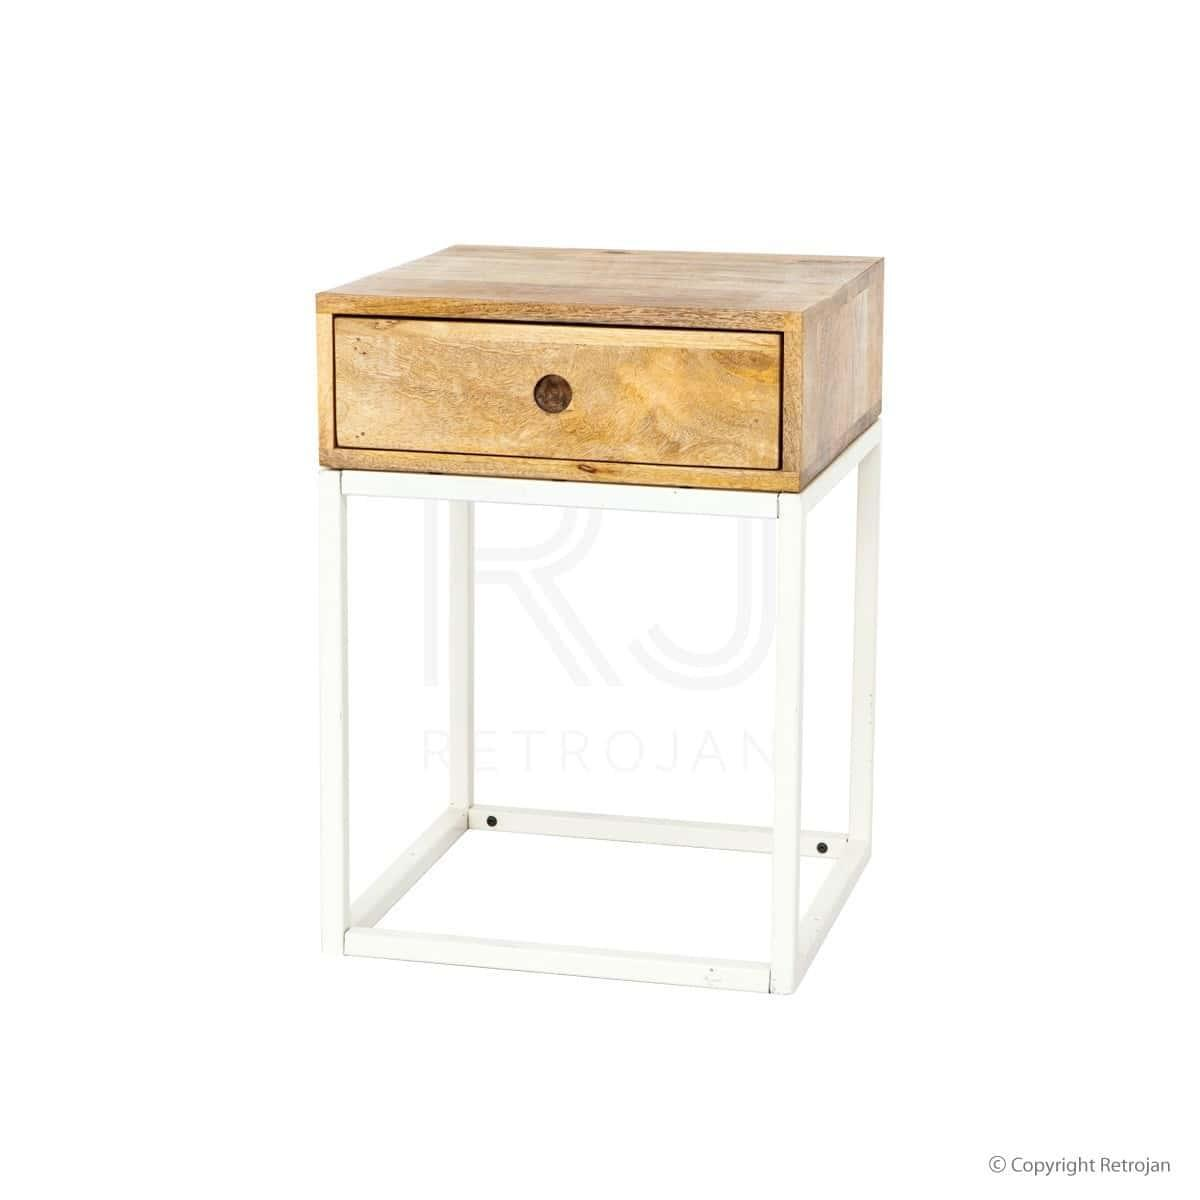 Colton Modern Designer Bedside Table - Solid Wood